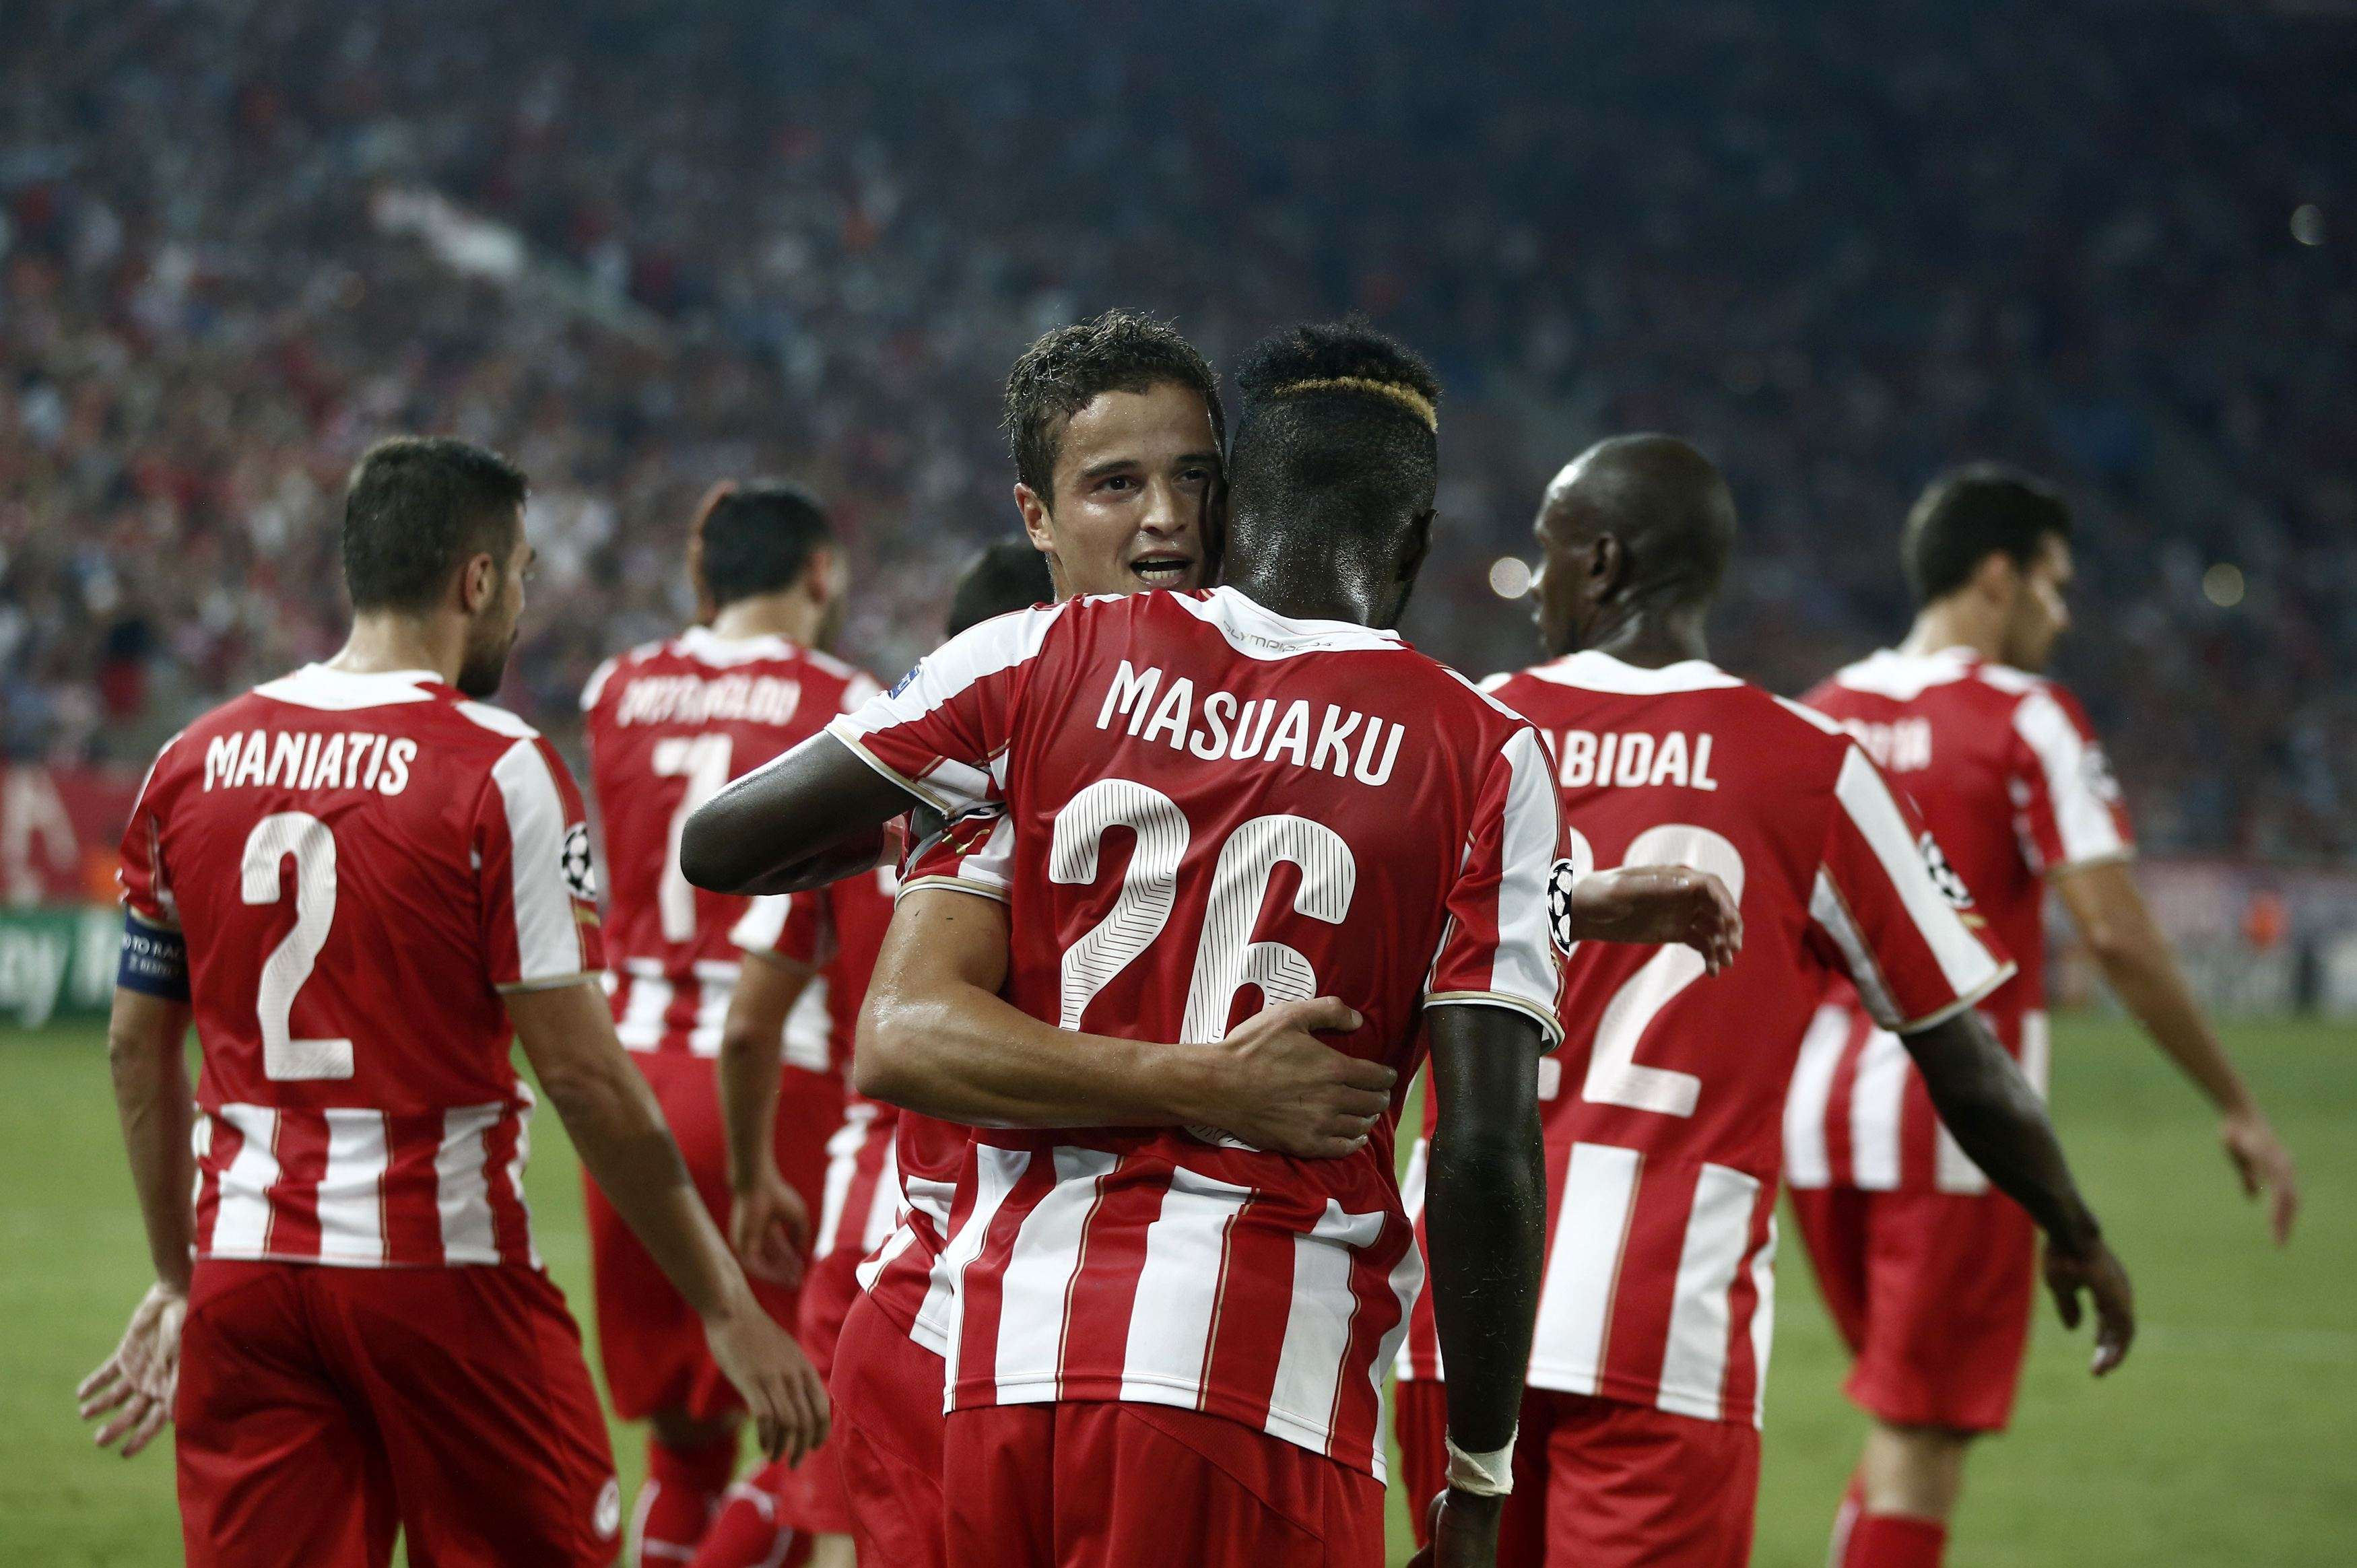 Olympiakos' Ibrahim Afellay (C) celebrates with his teammates after scoring a goal during their Champions League soccer match against Atletico Madrid at Karaiskaki stadium in Piraeus, near Athens, September 16, 2014. REUTERS/Alkis Konstantinidis (GREECE - Tags: SPORT SOCCER) Foto: ALKIS KONSTANTINIDIS/REUTERS